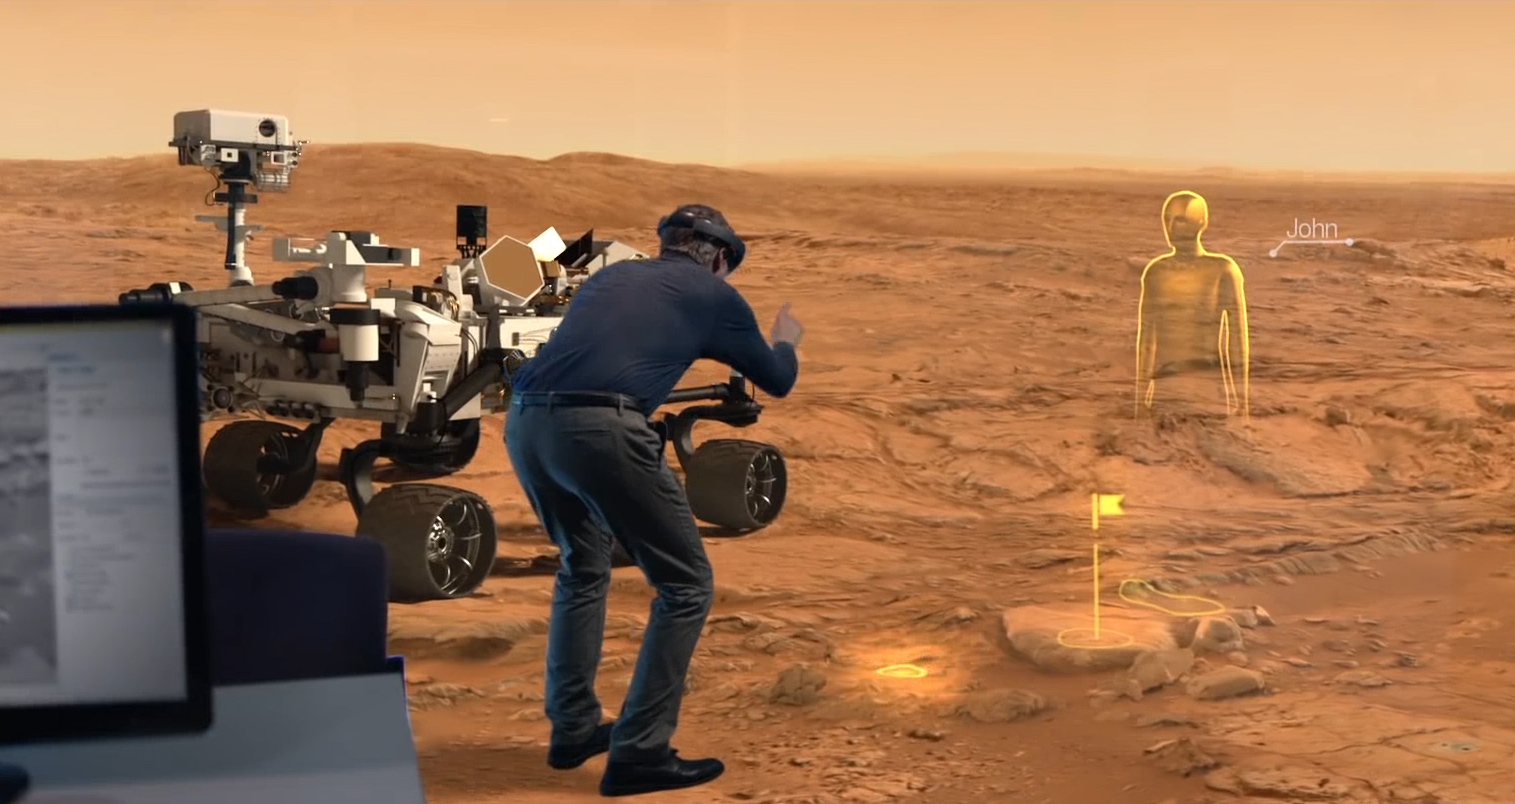 NASA is using HoloLens to explore Mars (Tomorrow Daily 369)